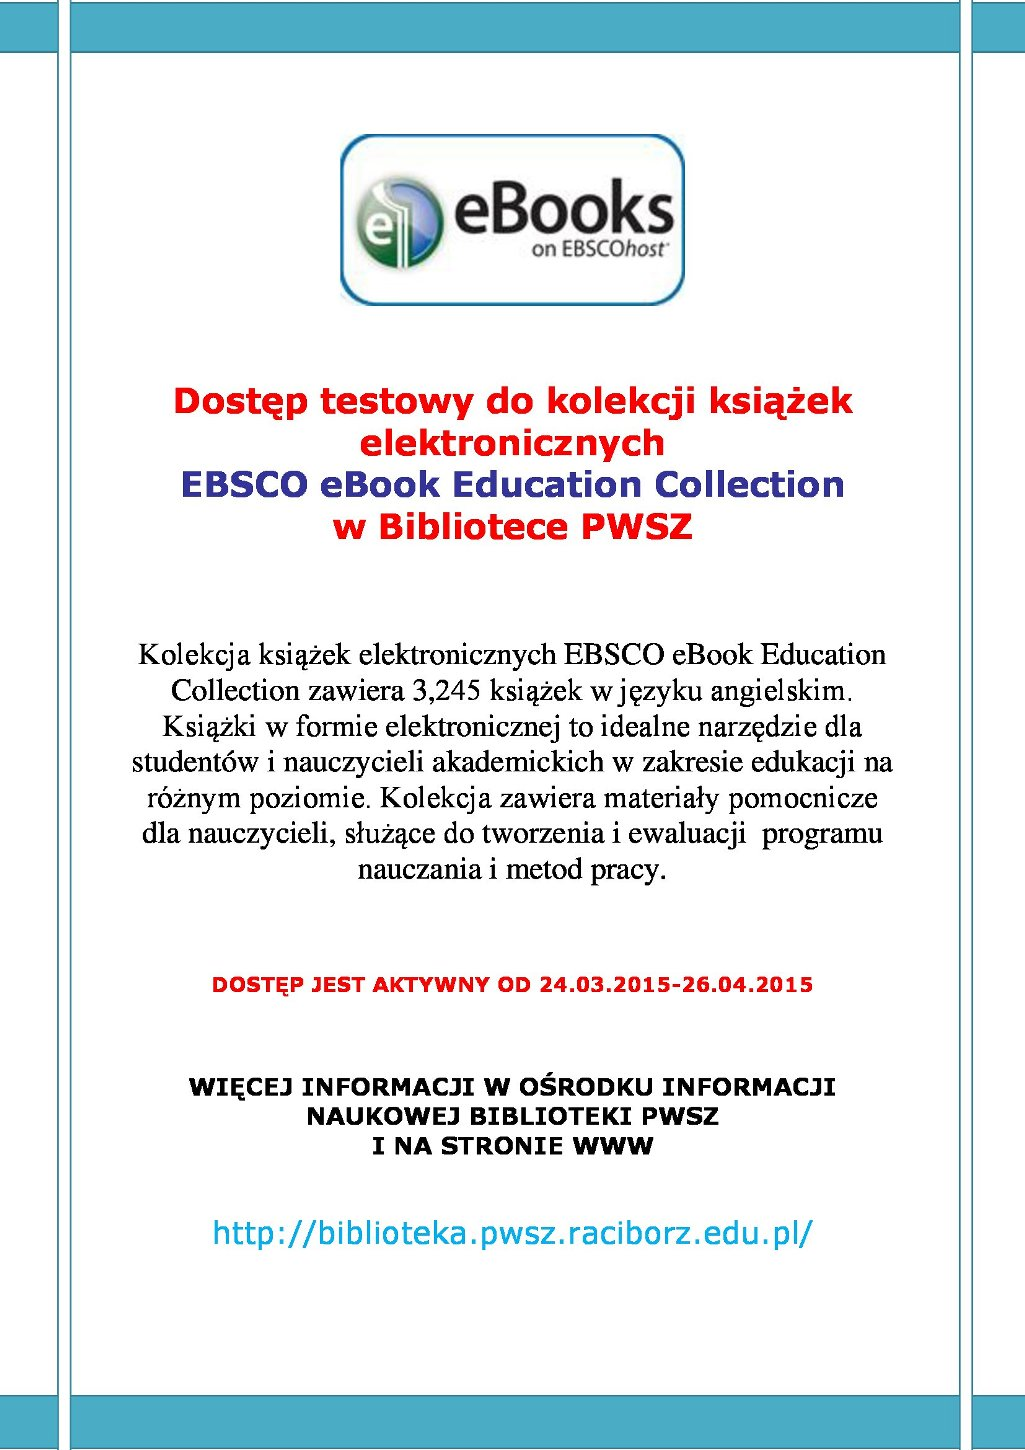 PLAKAT EBSCO eBook